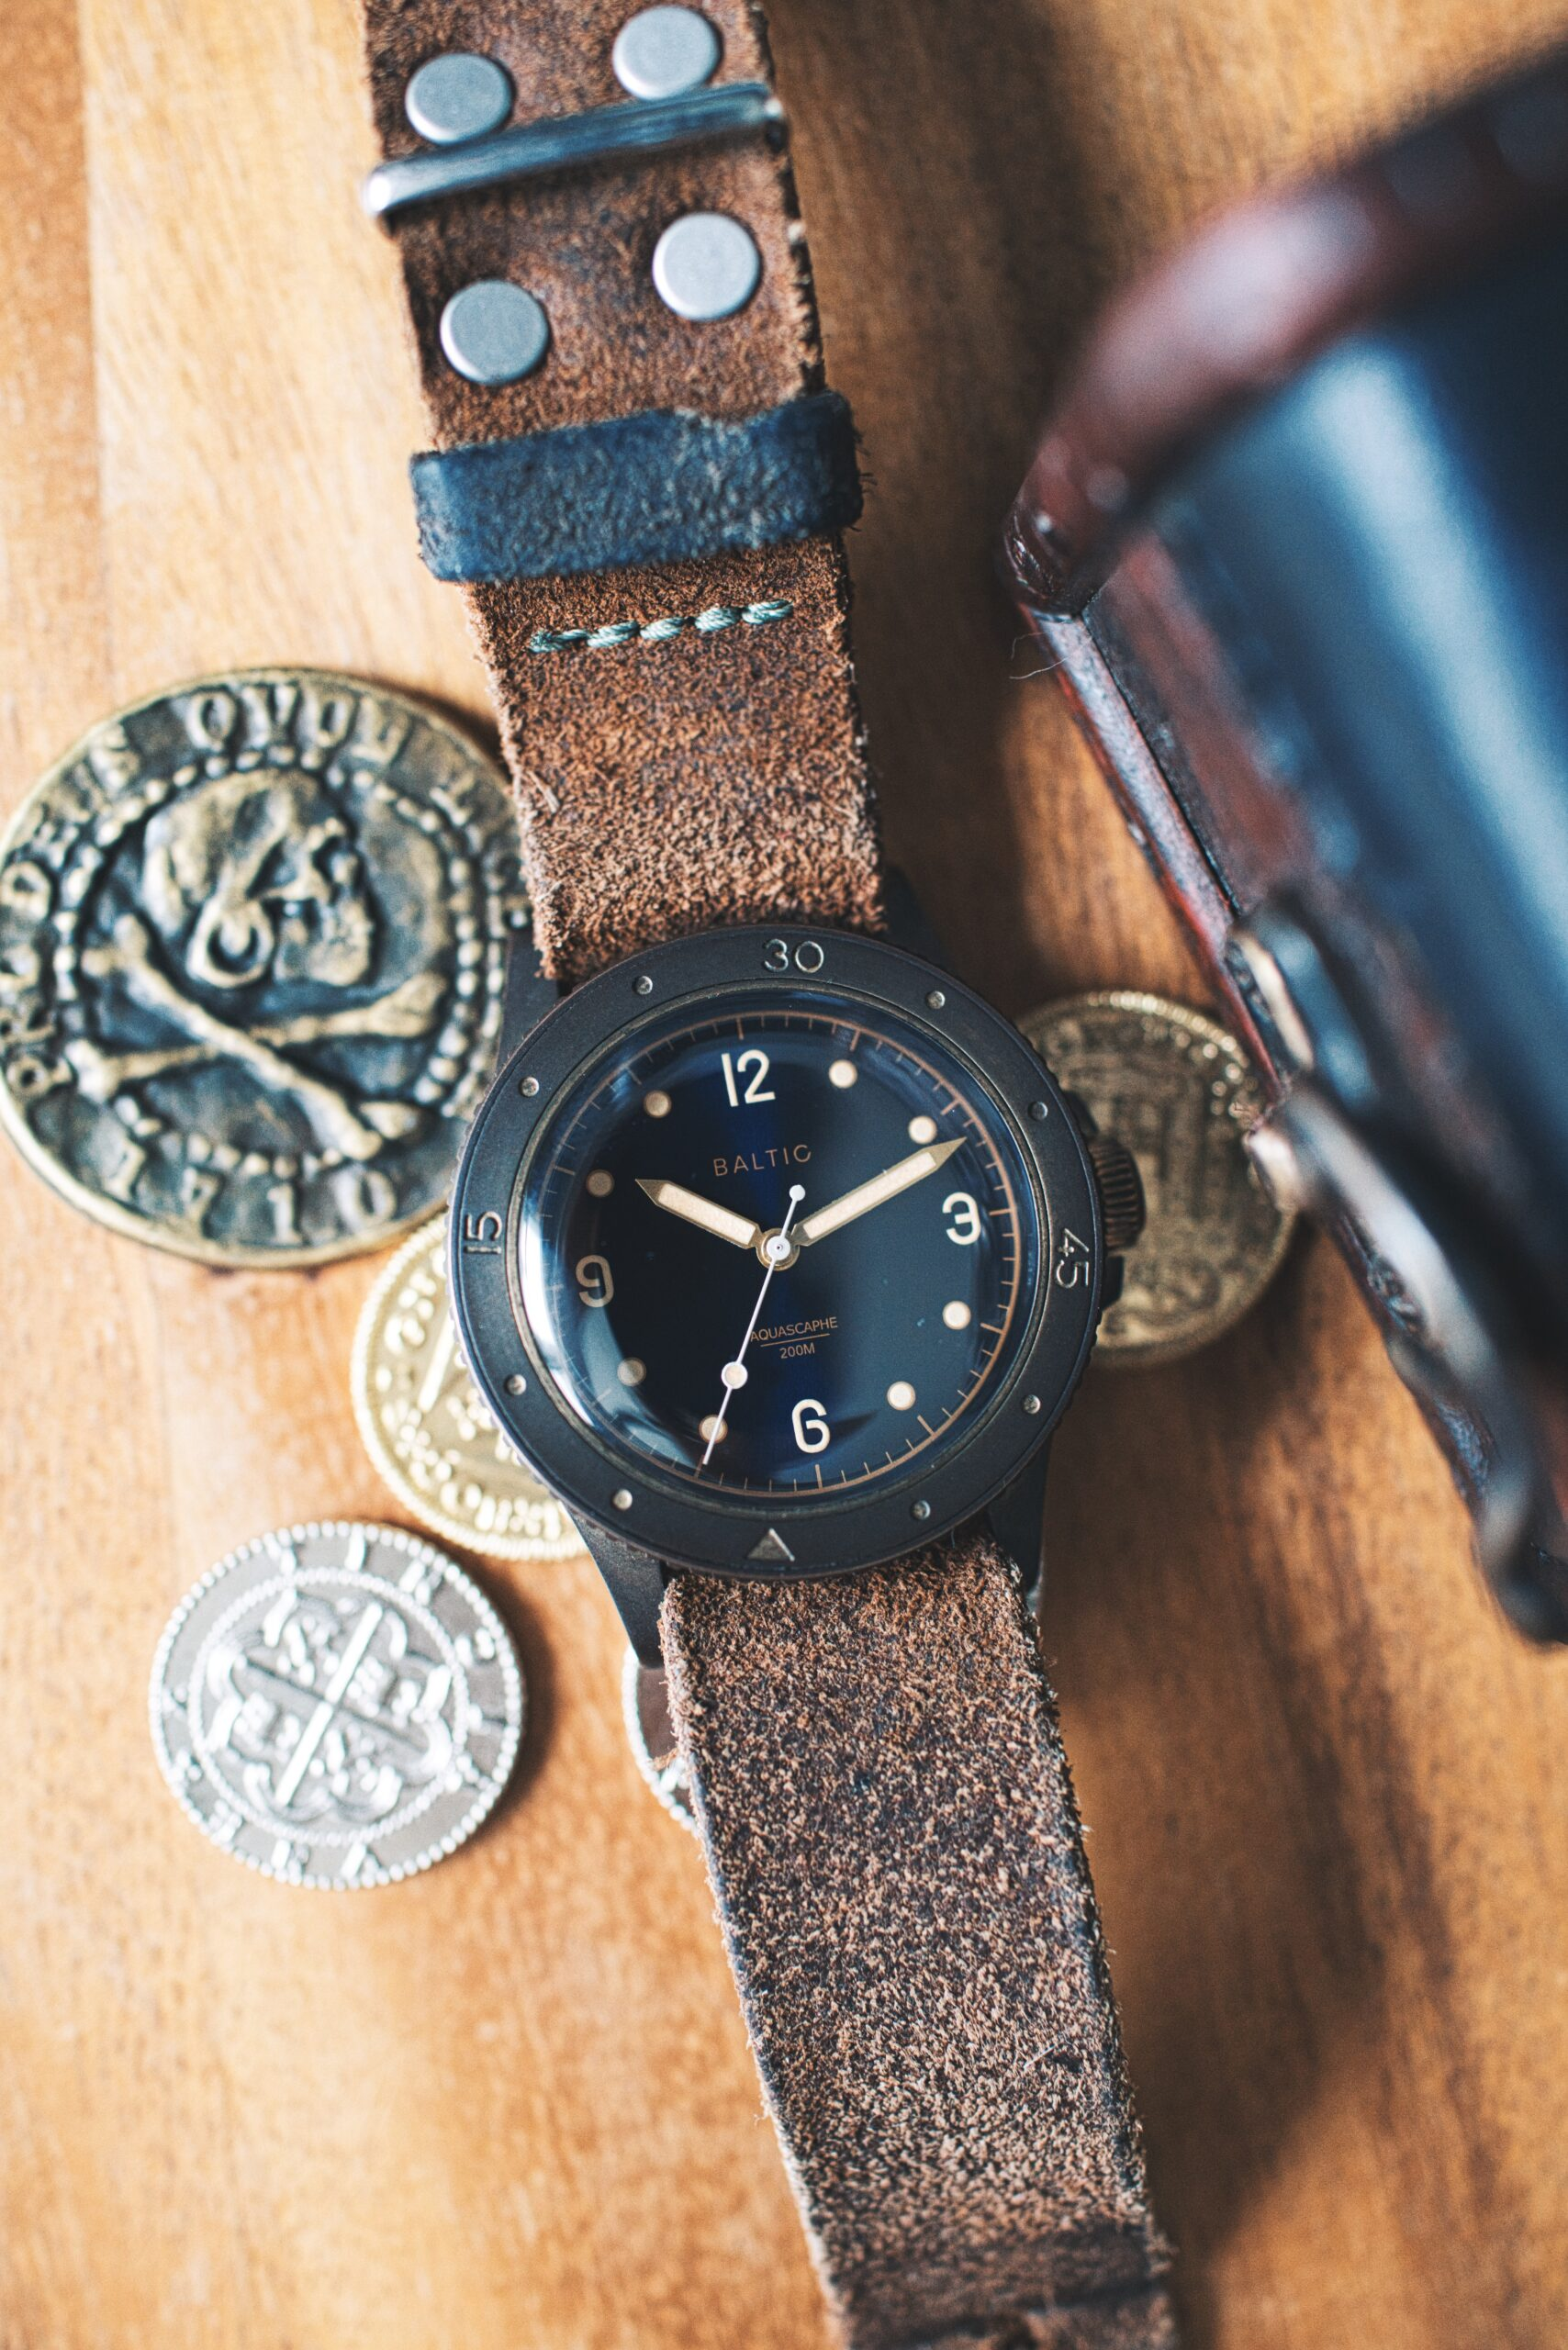 A very patinaed baltic bronze next to old pirate coins, near a small treasure chest sitting atop a wood desktop. Watch on a worn rough leather strap.